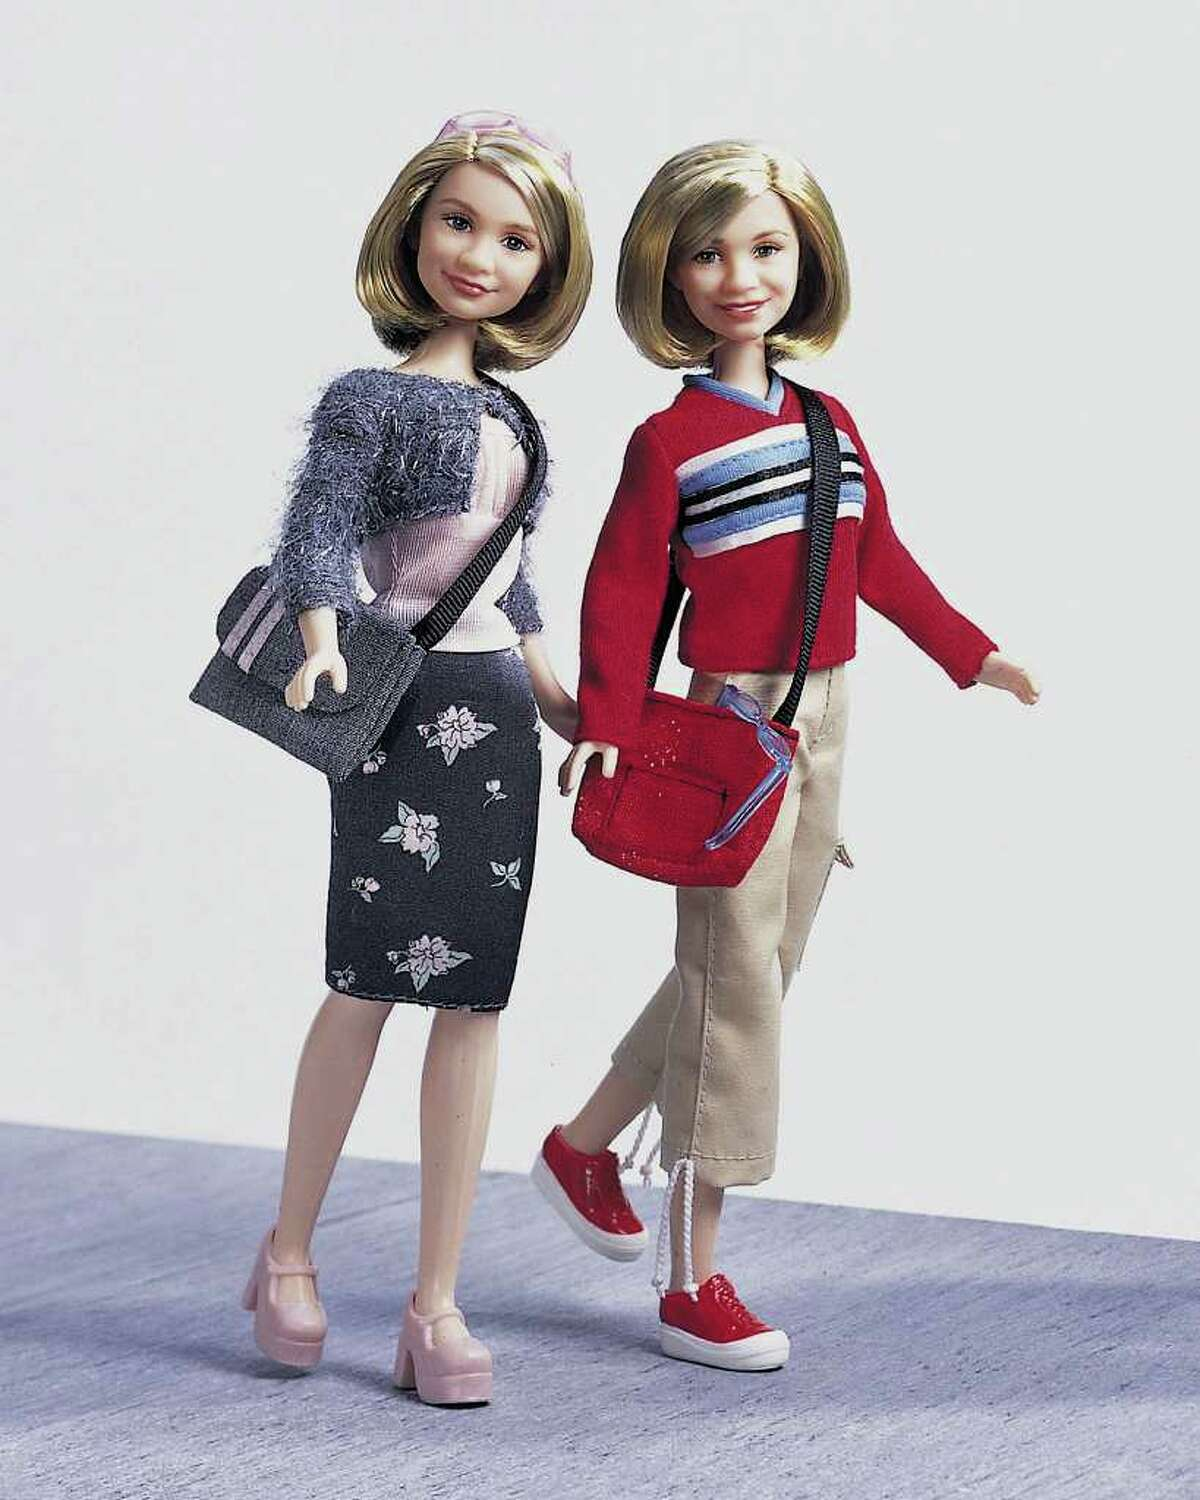 Mary-Kate and Ashley are represented on September 15, 2000 in a line of toy celebrity dolls by the toy company Mattel.